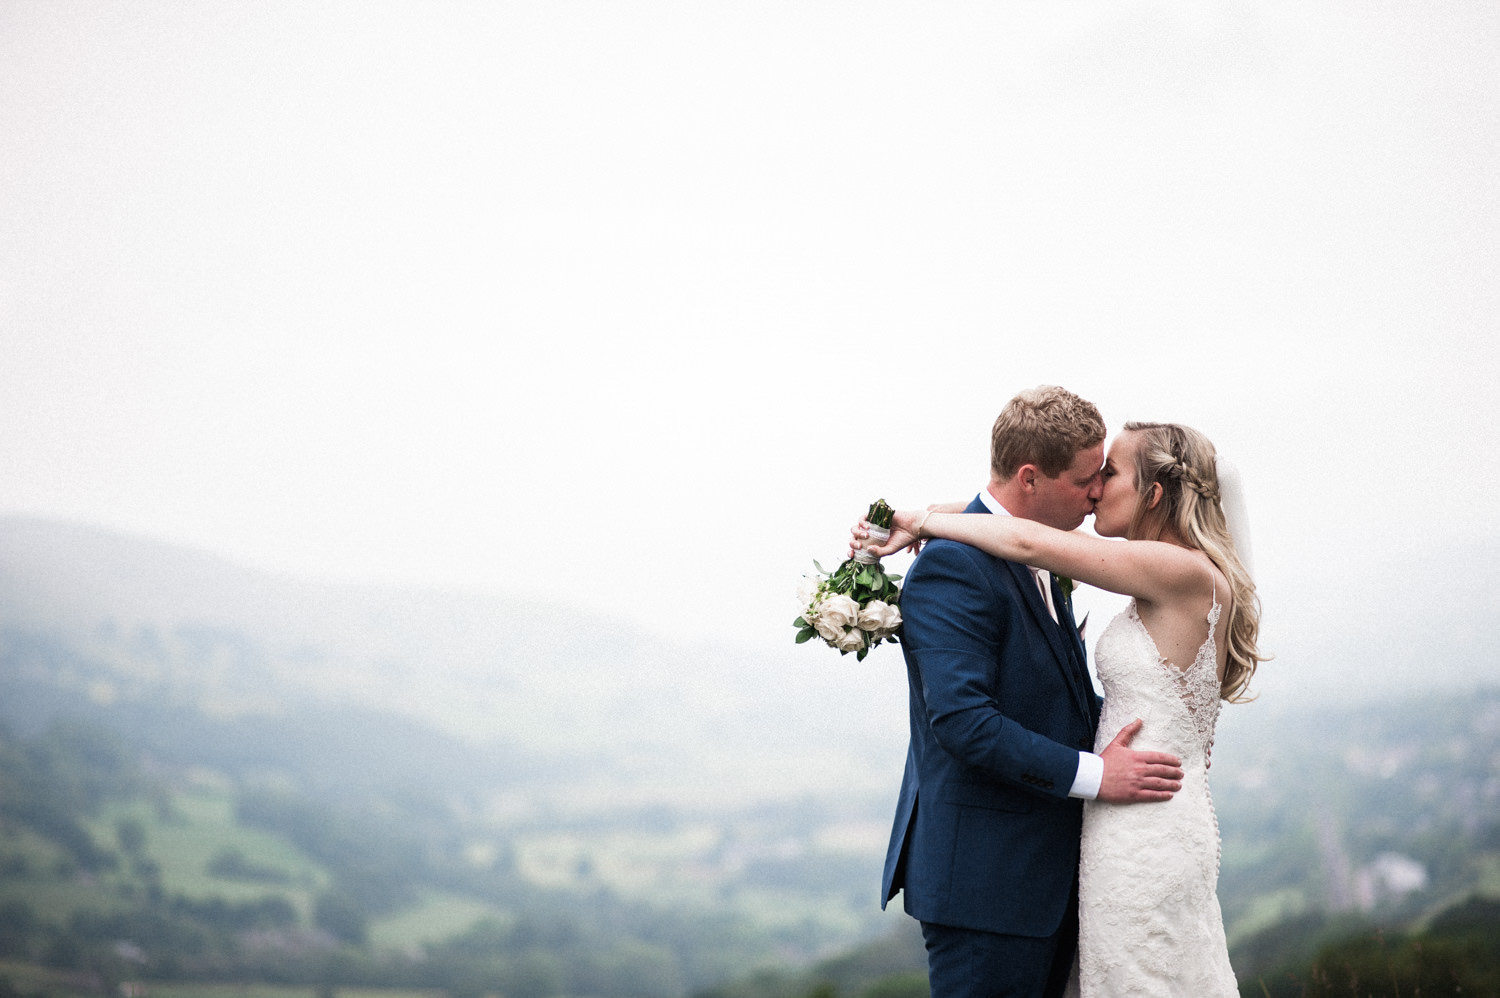 peak-district-wedding-photographer-Amanda-and-will-42.jpg